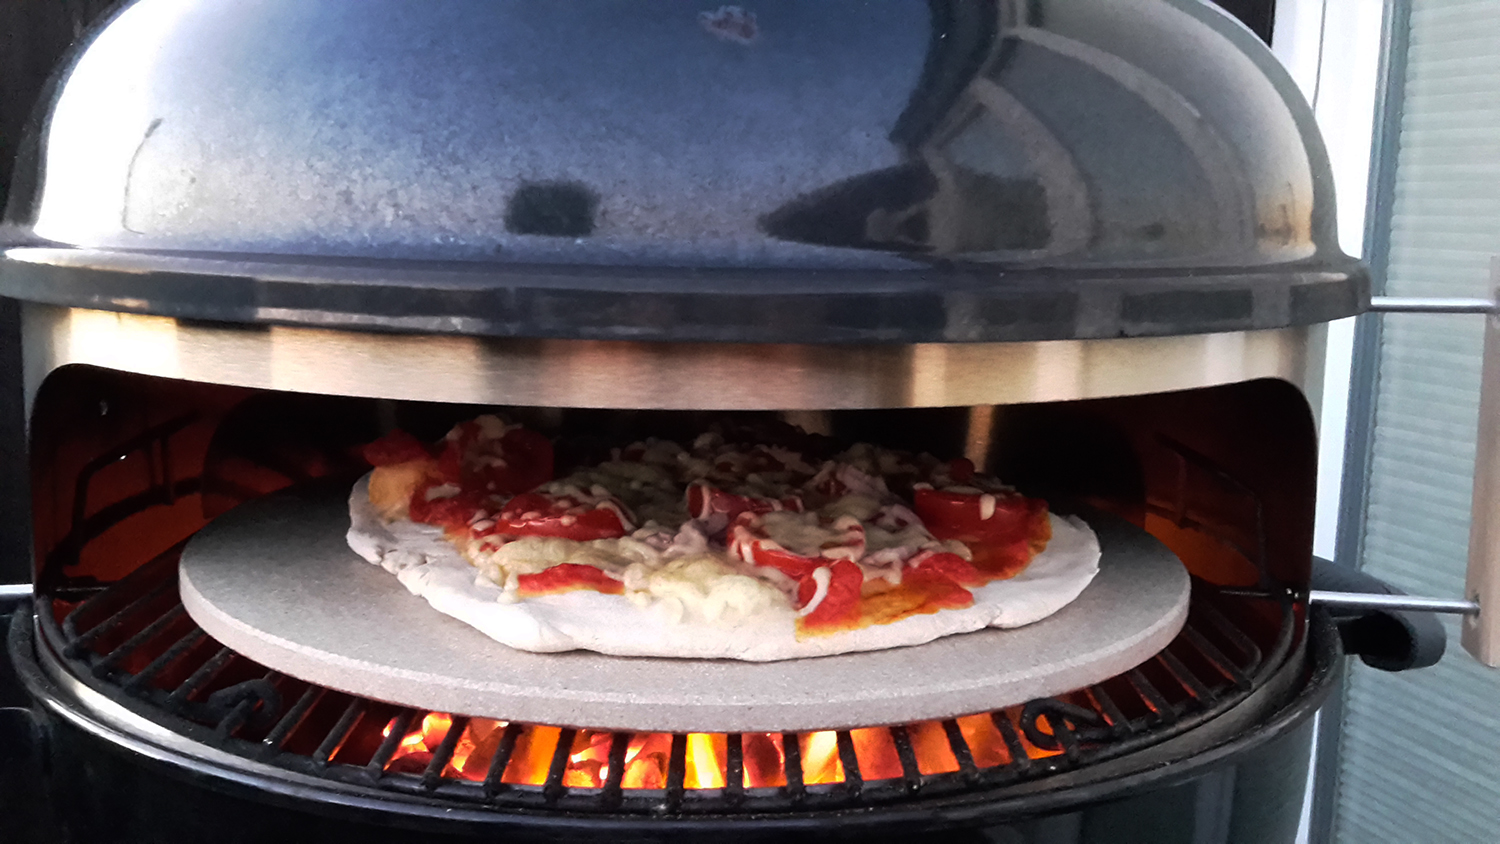 Weber Elektrogrill Pizza Backen : Pizzaring für den kugelgrill im test grill blog